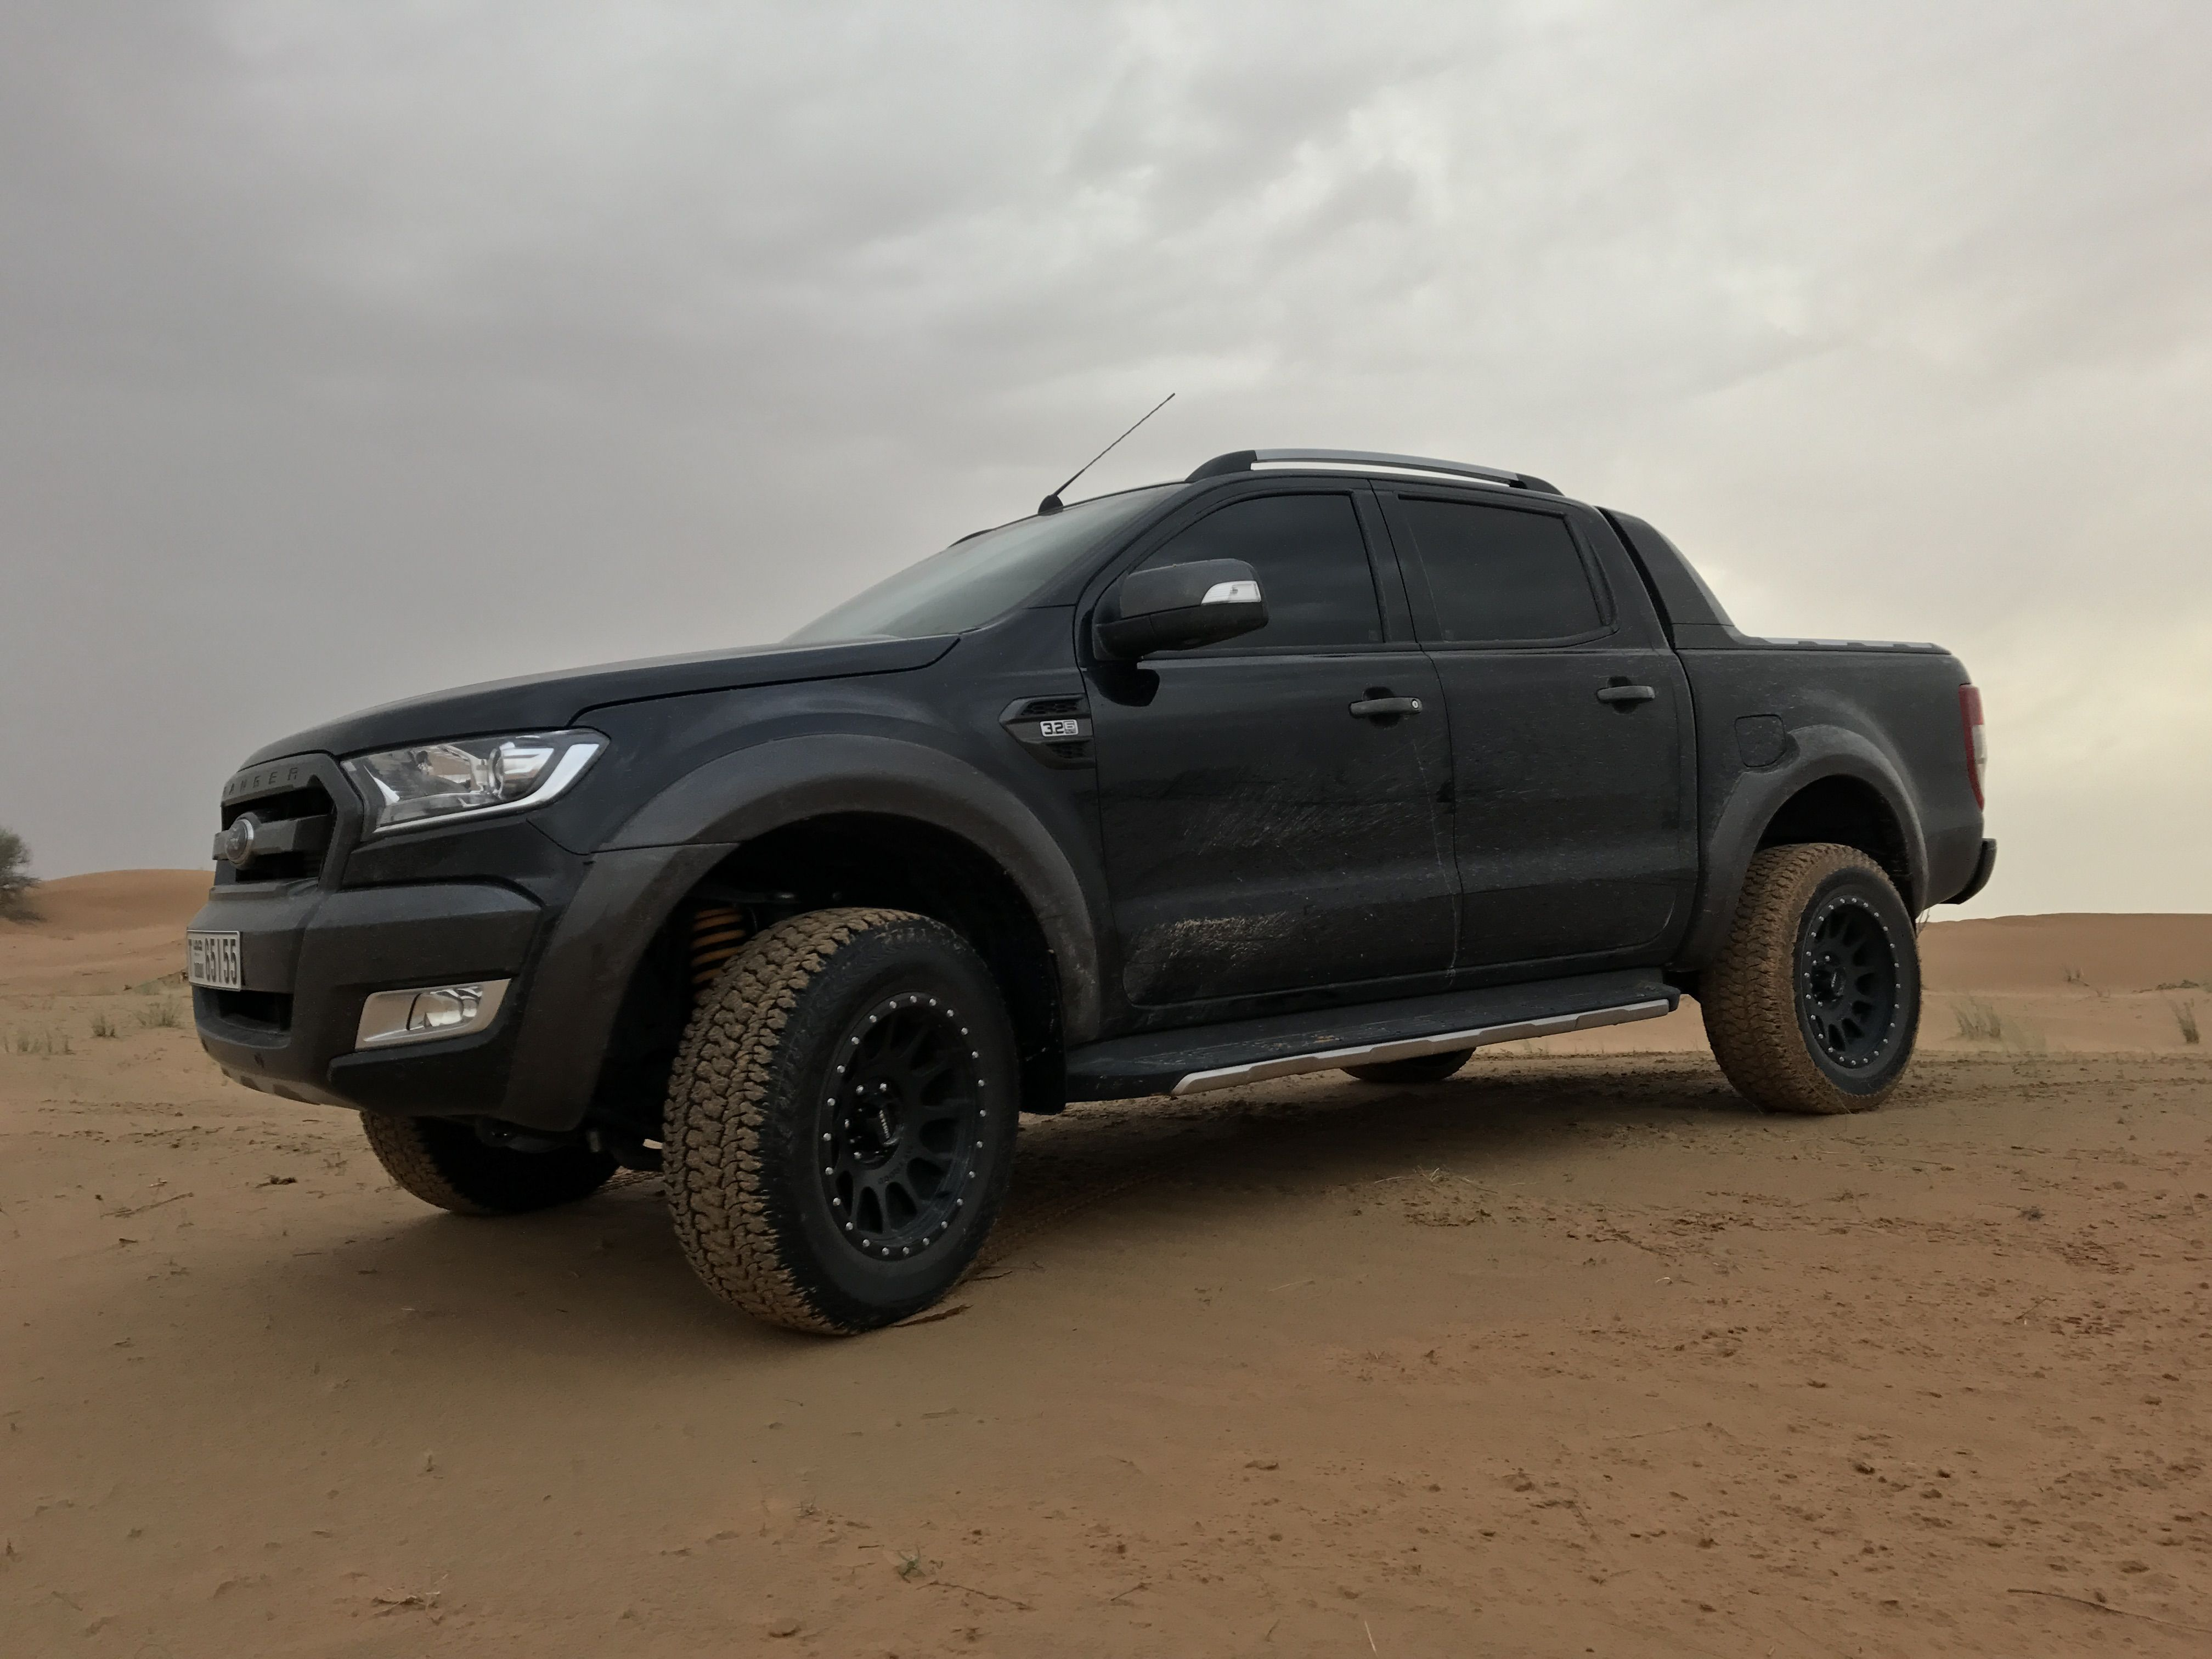 Ford Ranger 2017 >> My Ranger 2017 2 25 Tjm Lift Kit 275 60 R18 Ford Ranger Ford